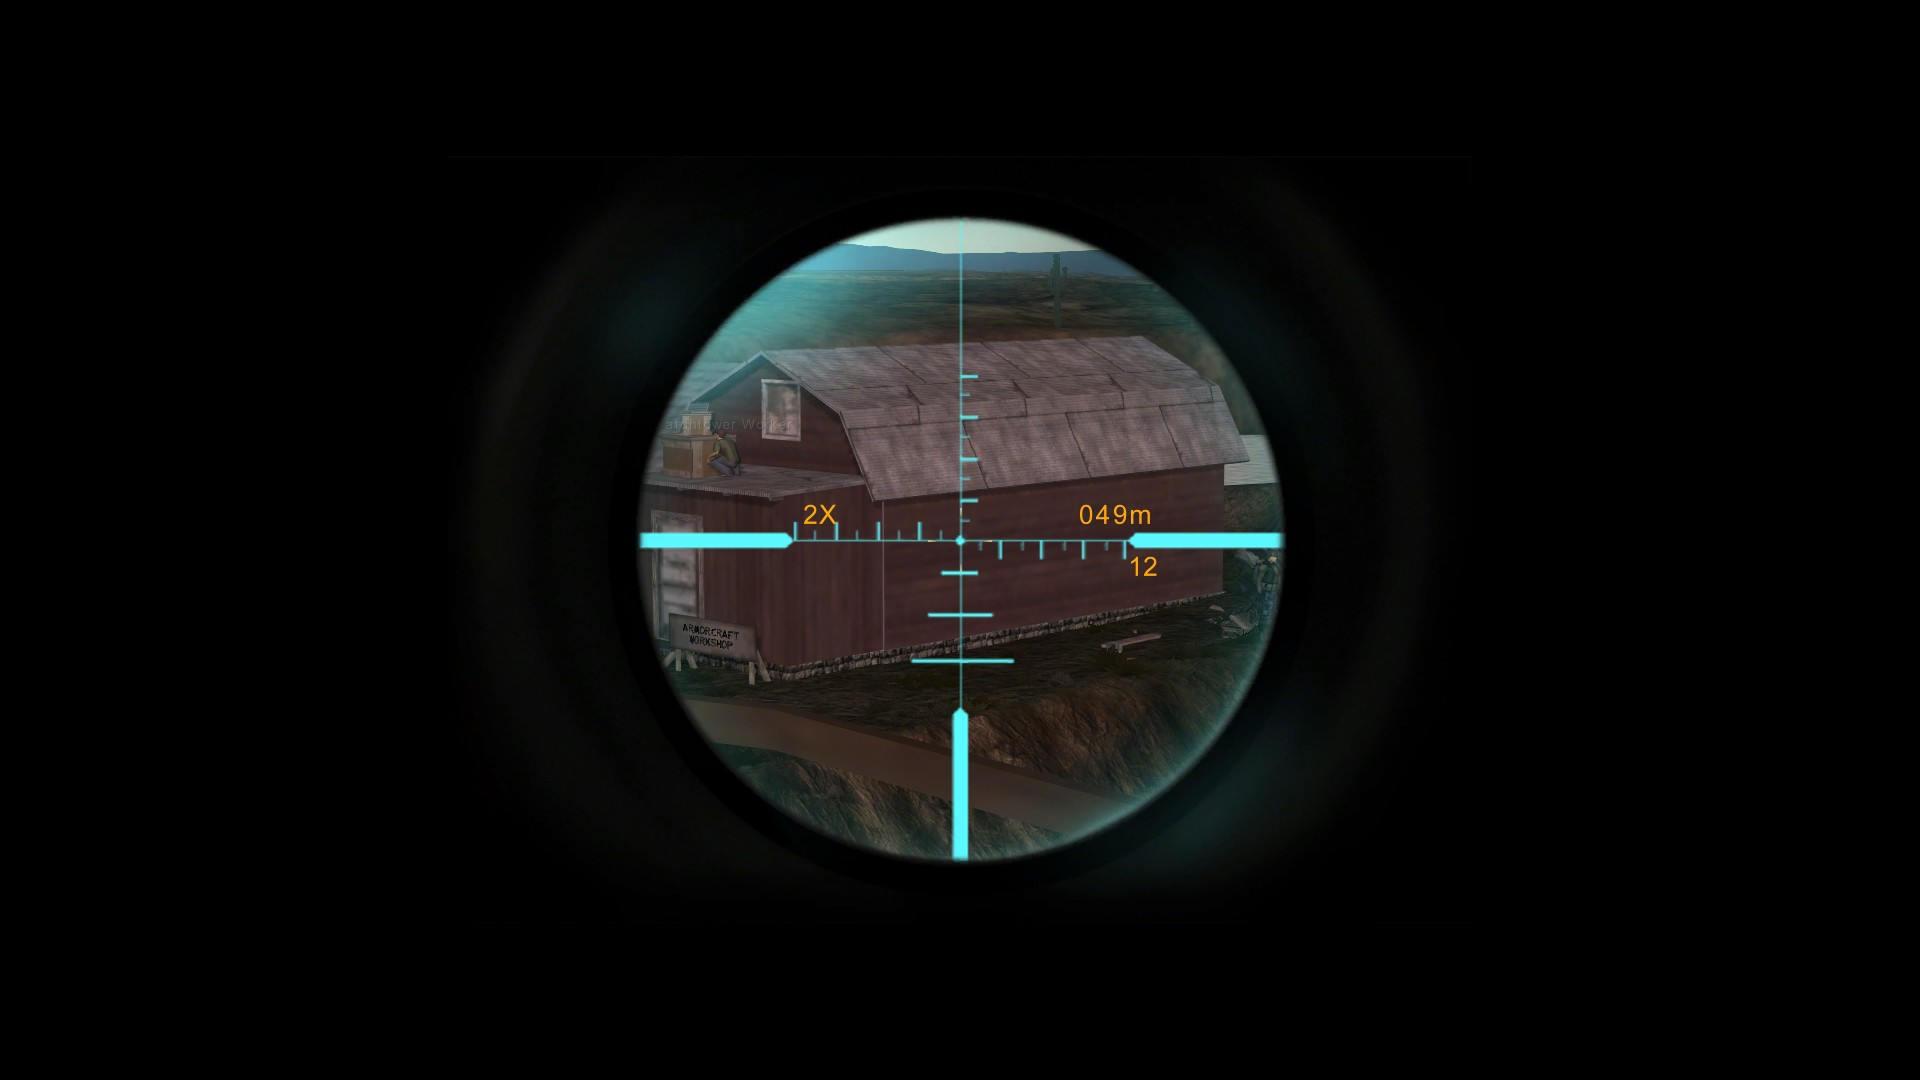 Fallen Earth - Hitting the broad side of a barn with a 4x scoped battle rifle